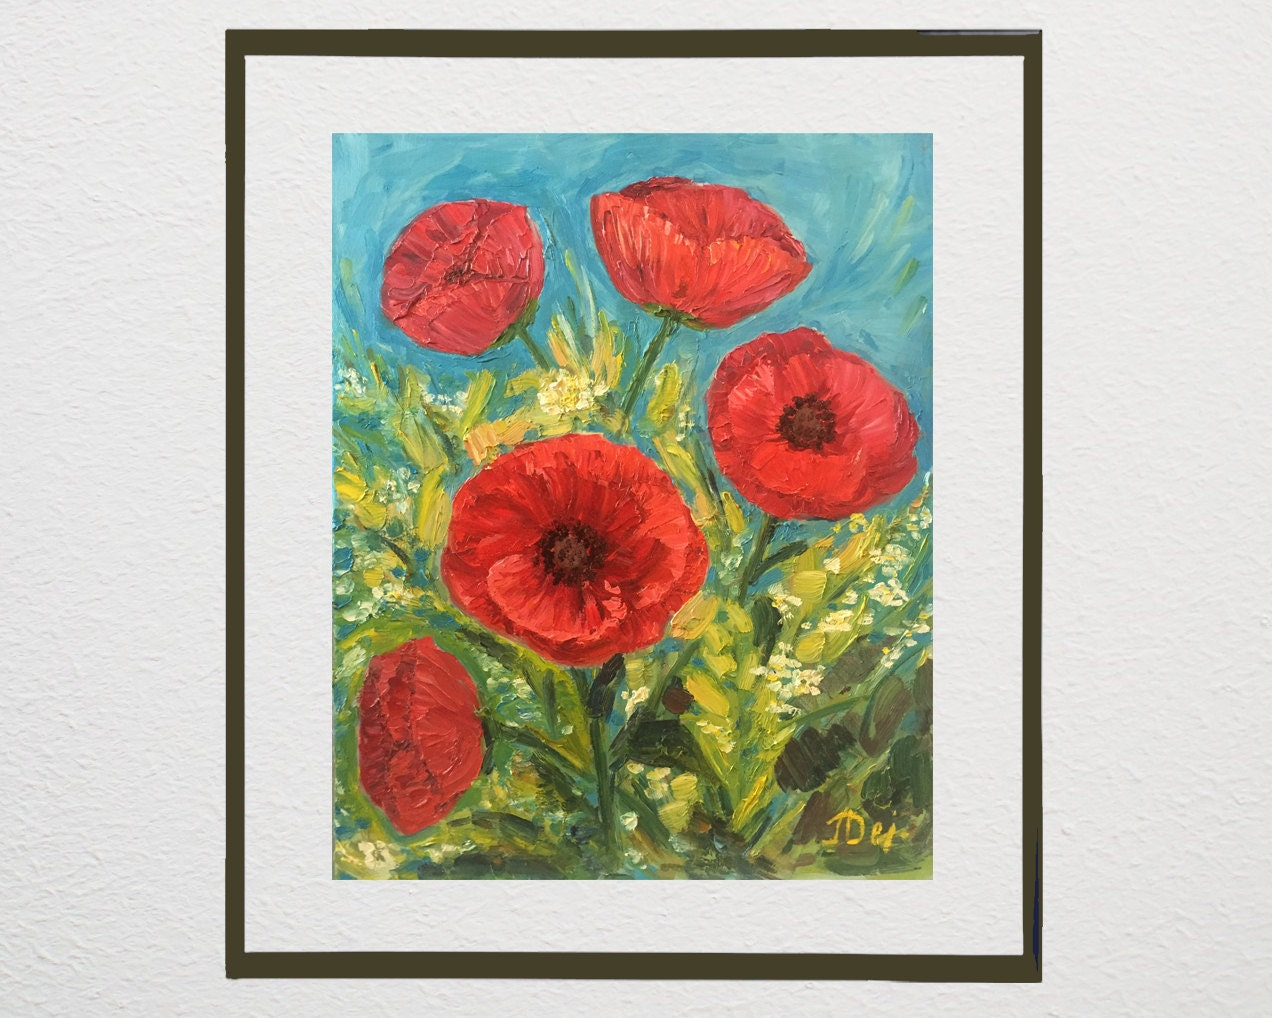 Red Poppy Wall Decor : Red poppy flowers floral wall art home decor original